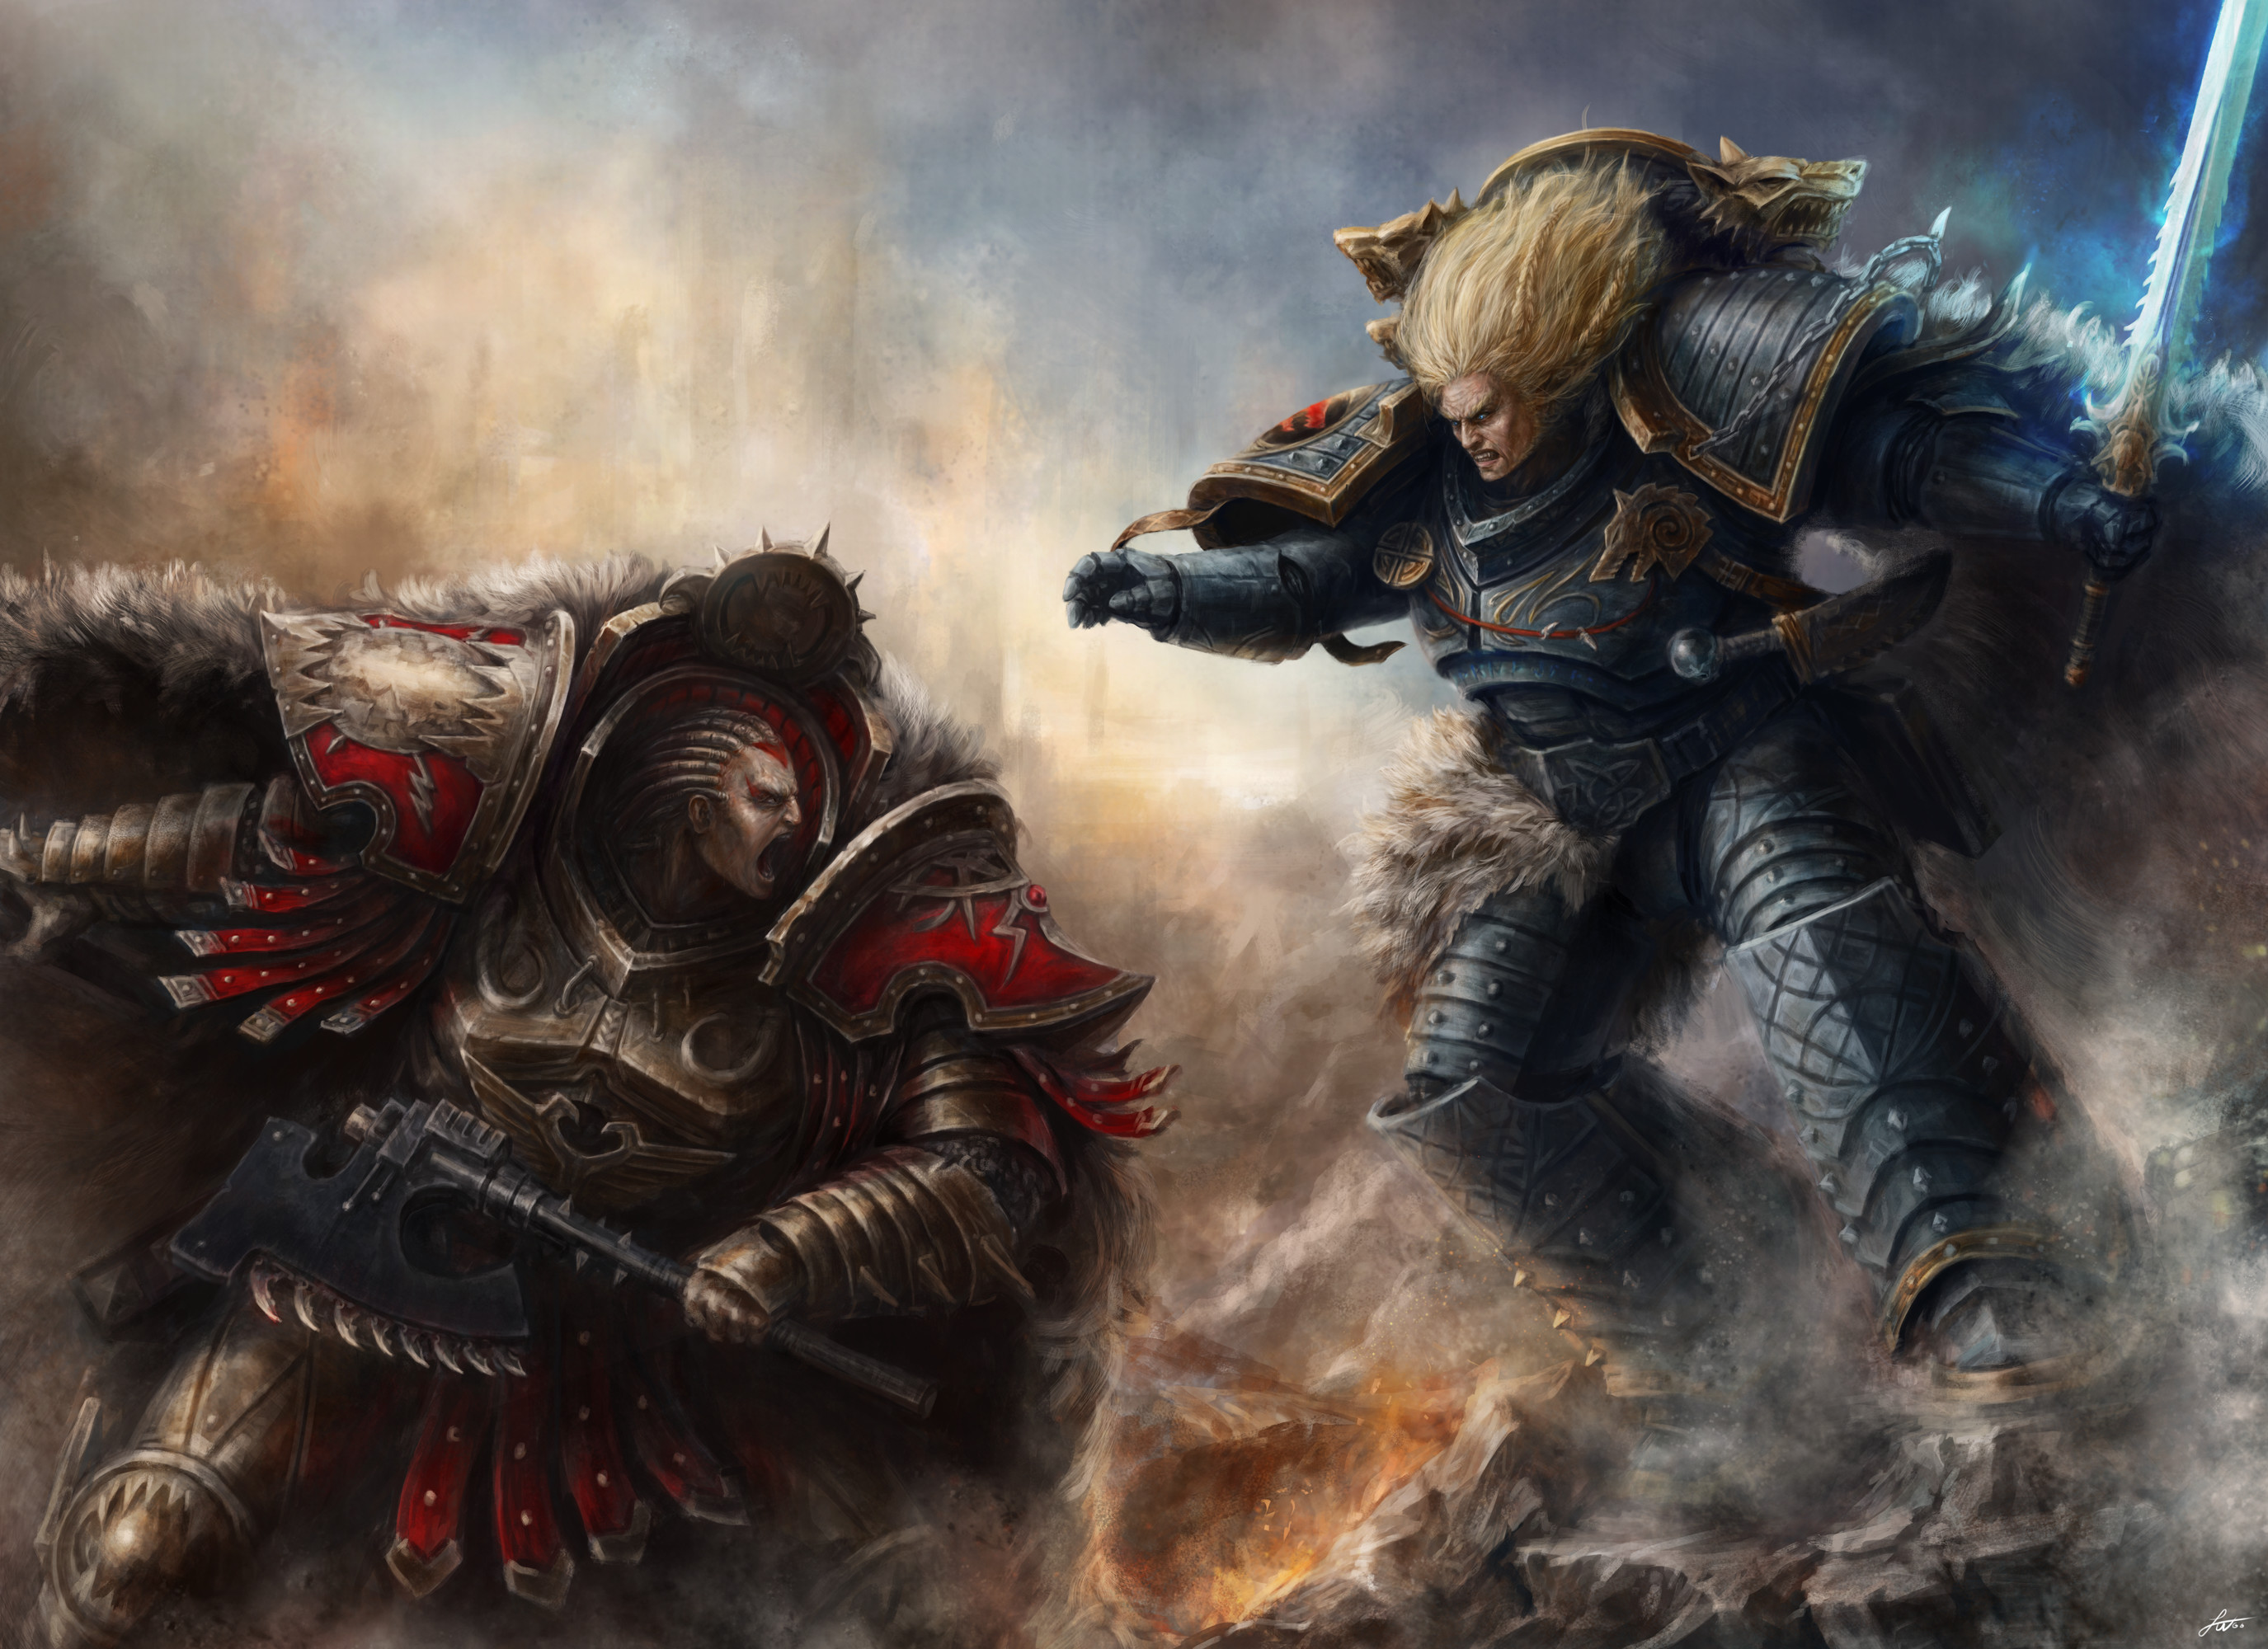 After their parley breaks down, tragically, the World Eaters, led by their  Primarch Angron, fiercely fought against the Wolf King and his Space Wolves  …